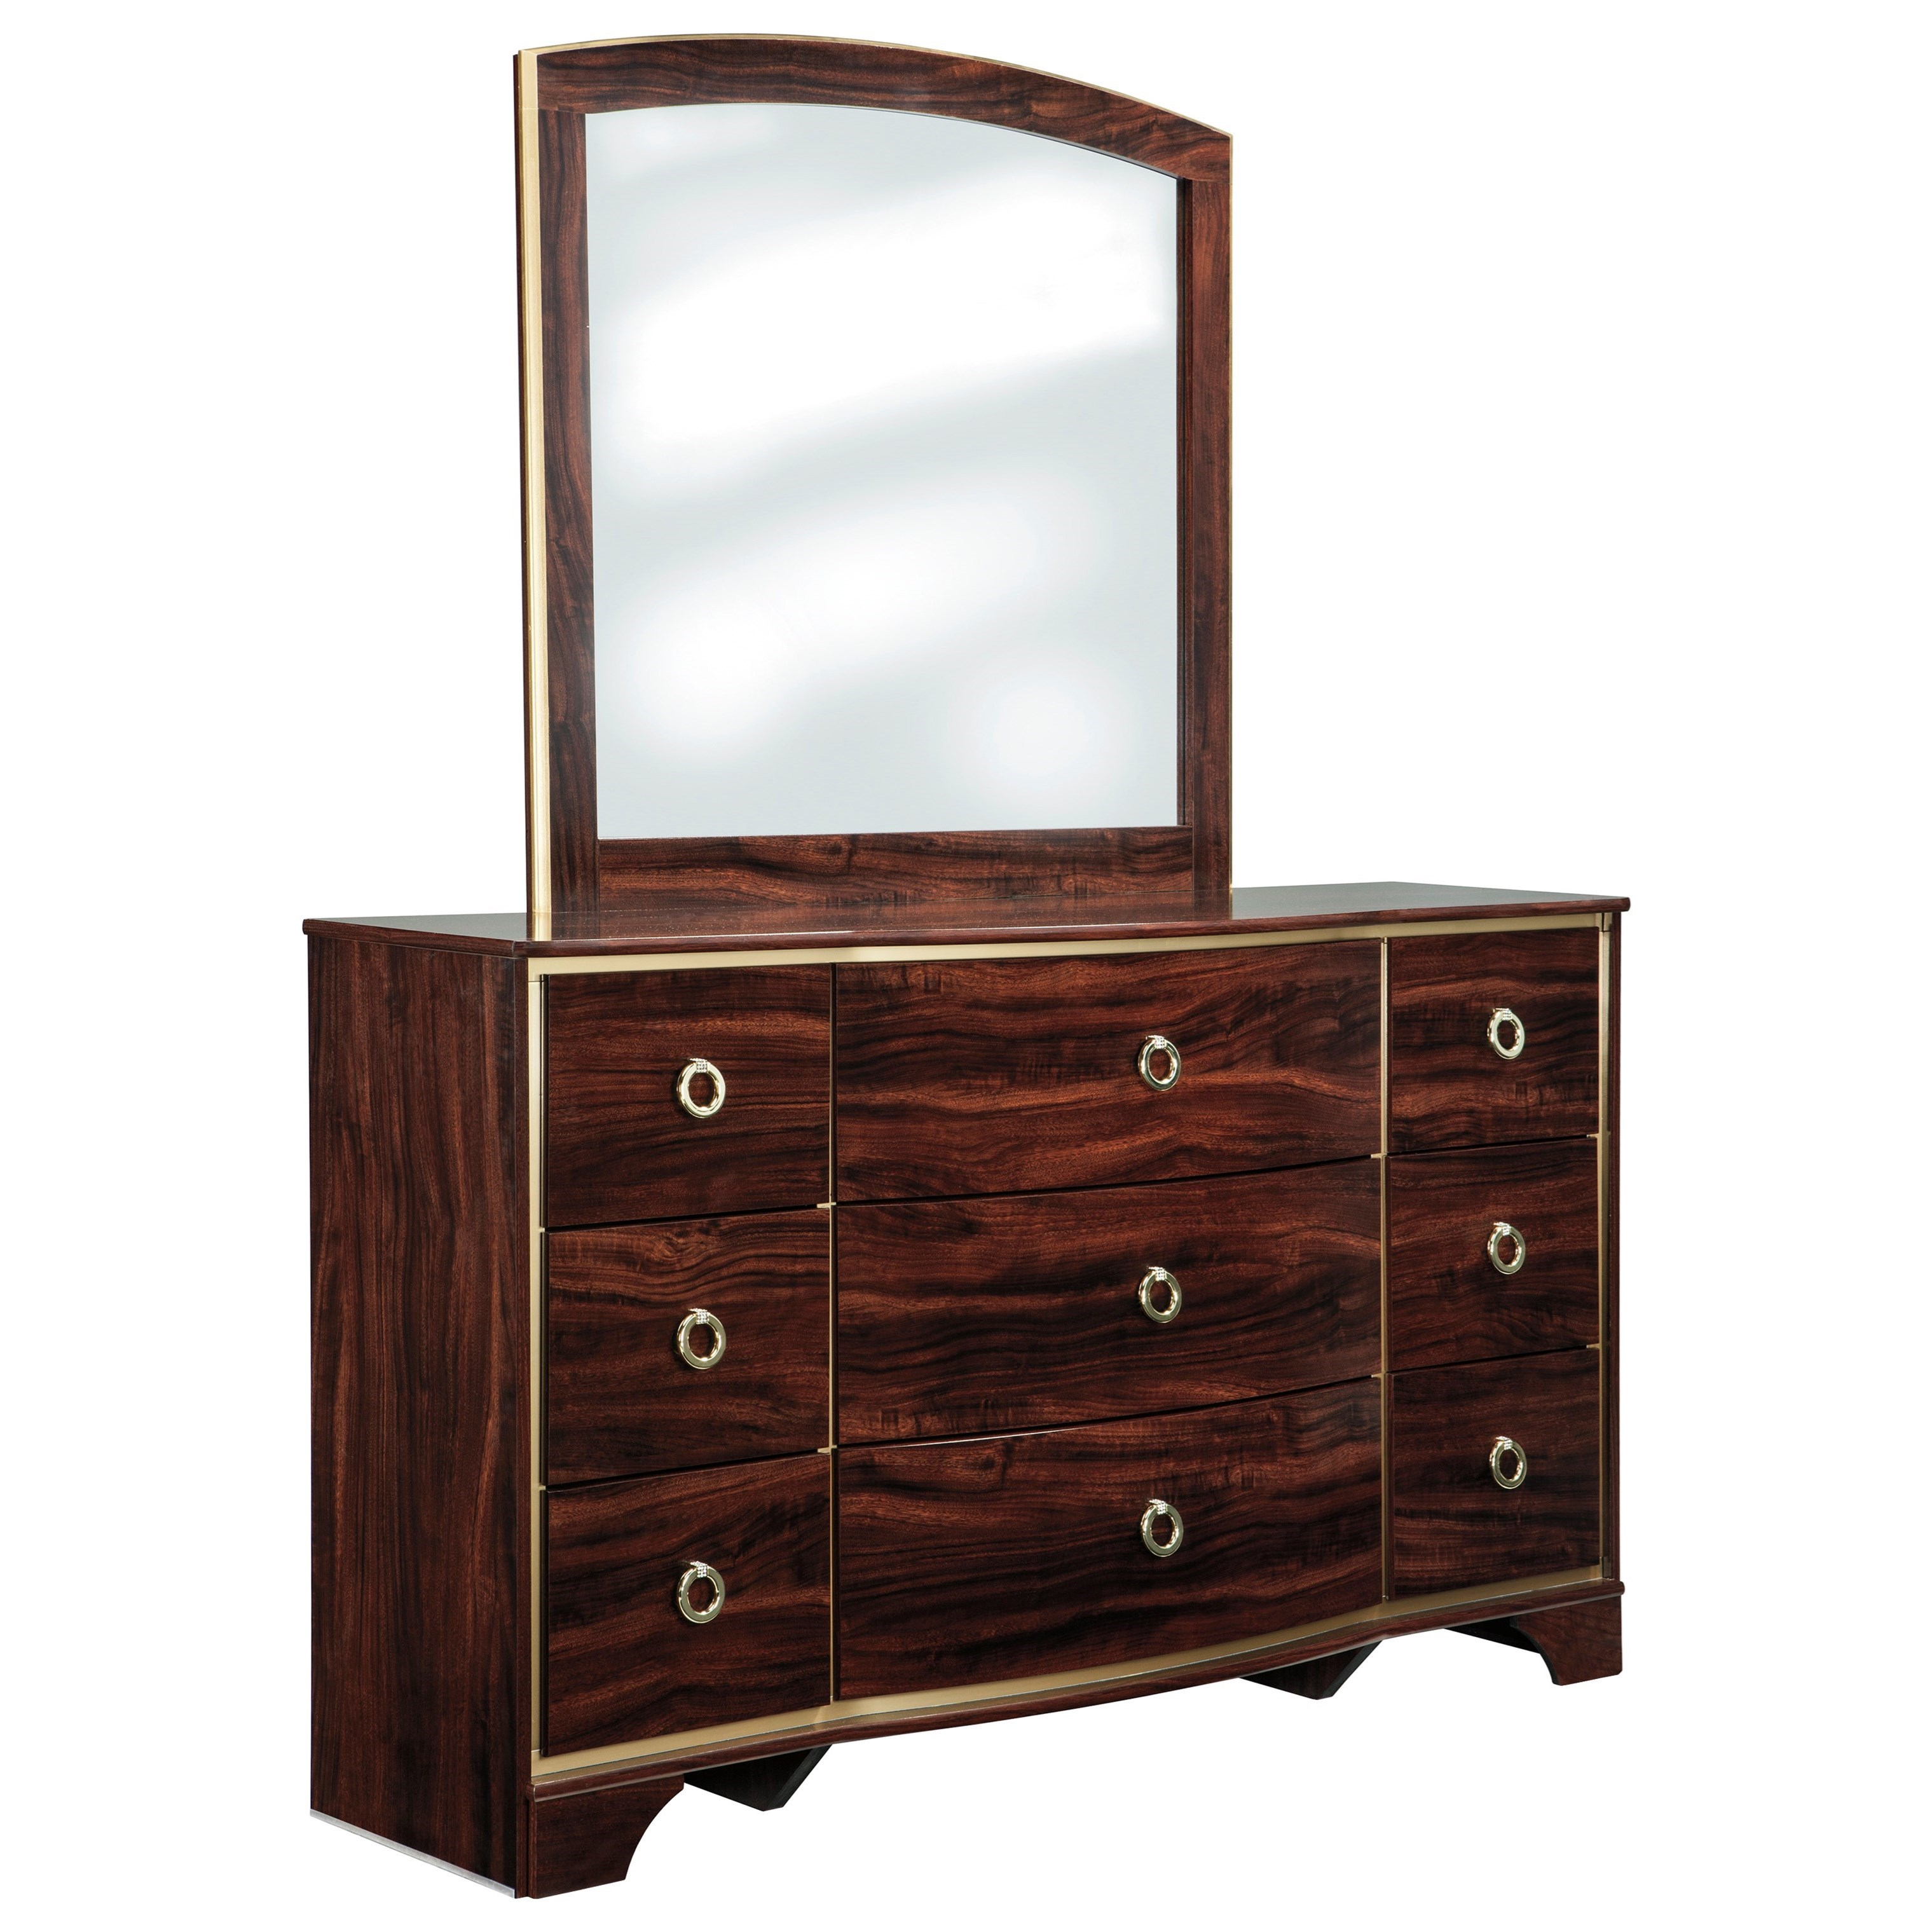 Signature Design by Ashley Lenmara Dresser & Bedroom Mirror - Item Number: B247-31+36